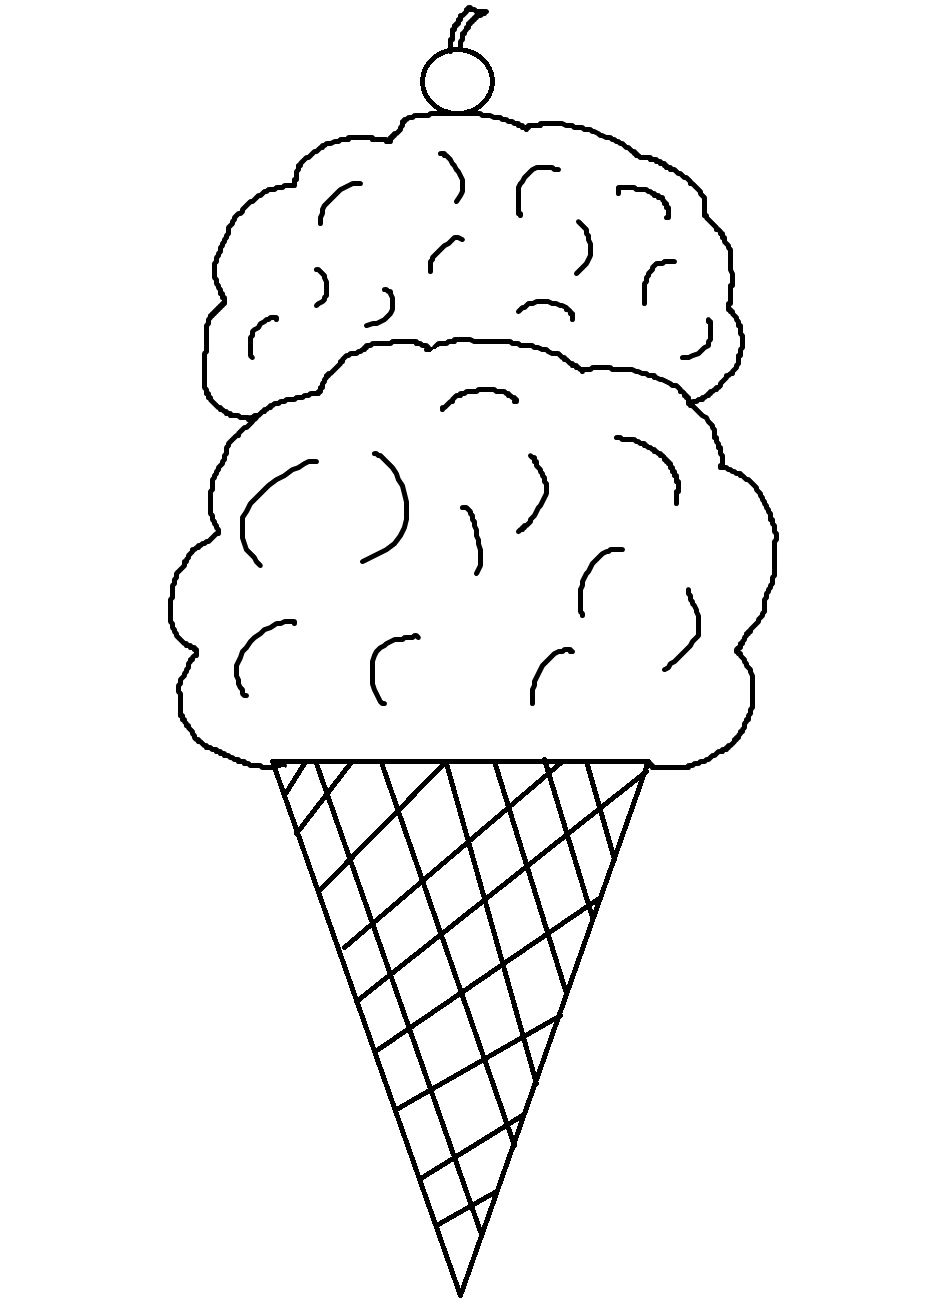 Modest Ice Cream Cone Coloring Page Best Ideas For You #30716 - Ice Cream Cone Template Free Printable